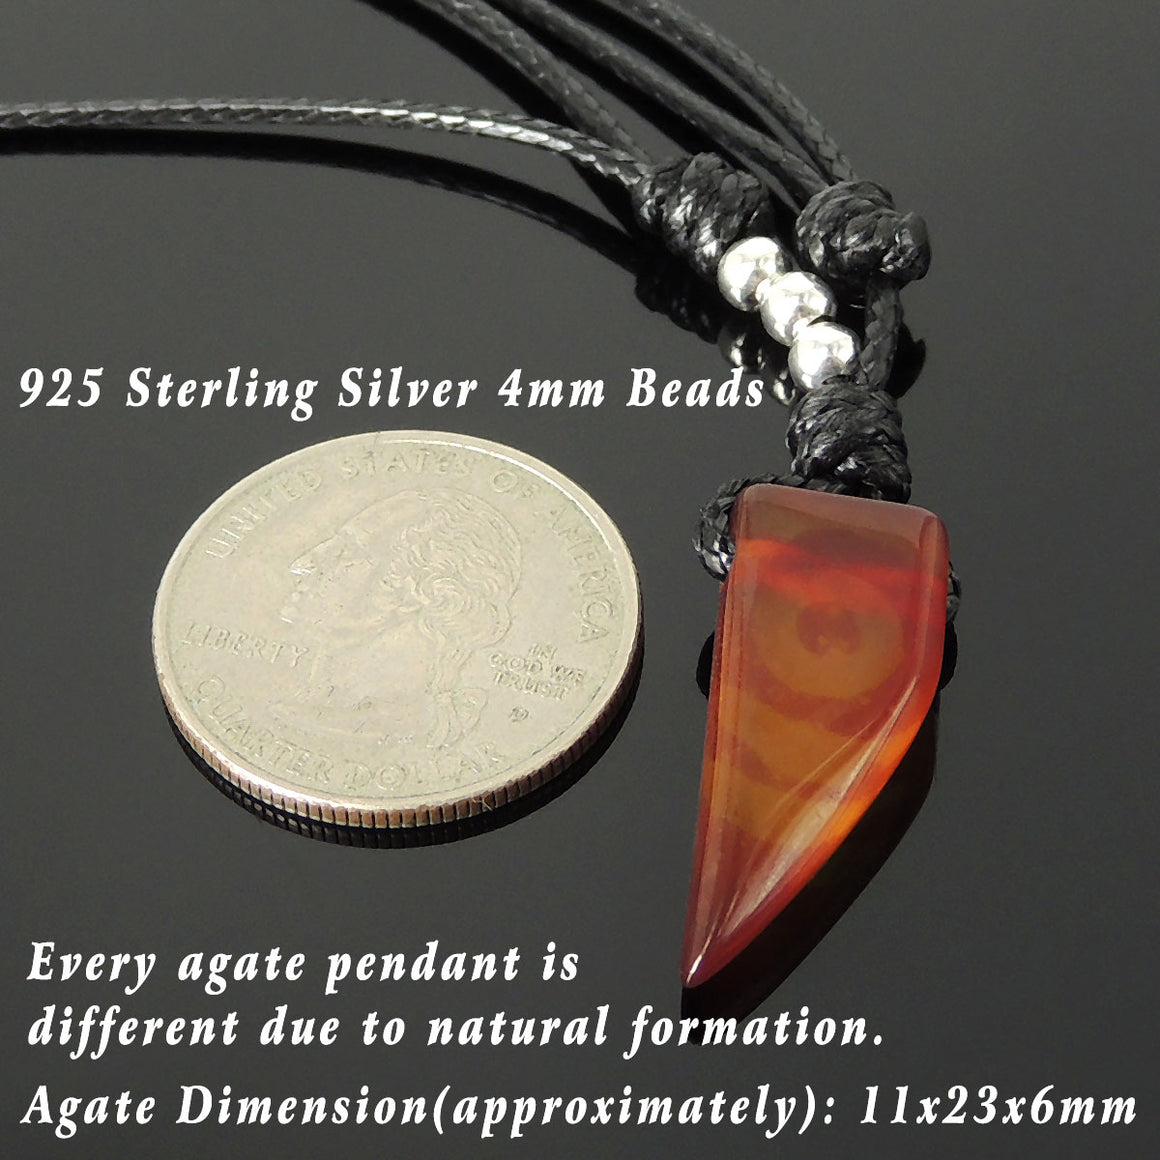 Agate Wolf Tooth Pendant Adjustable Wax Rope Necklace with S925 Sterling Silver Seamless Beads - Handmade by Gem & Silver NK202